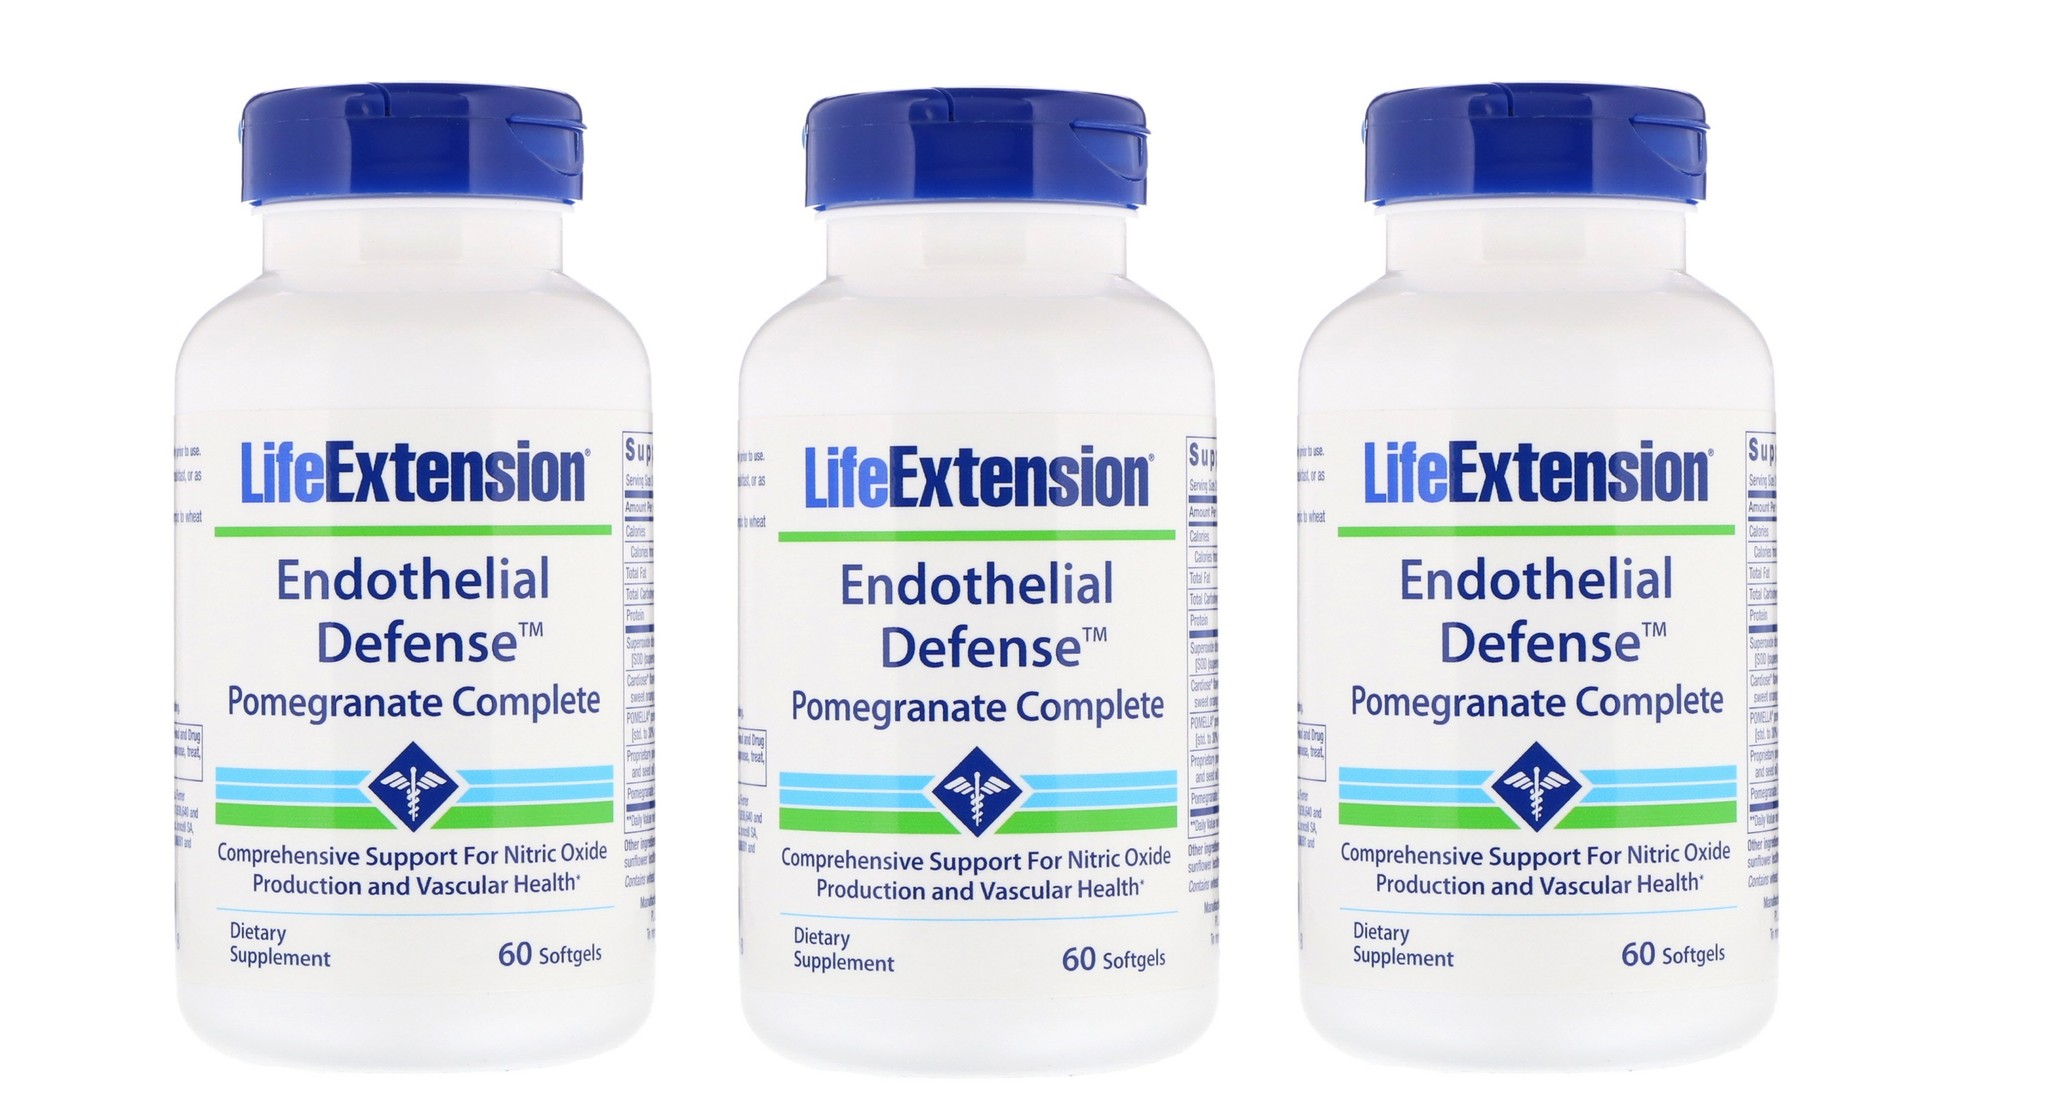 Life Extension Endothelial Defense™ Pomegranate Complete, 60 Capsules, 3-packs